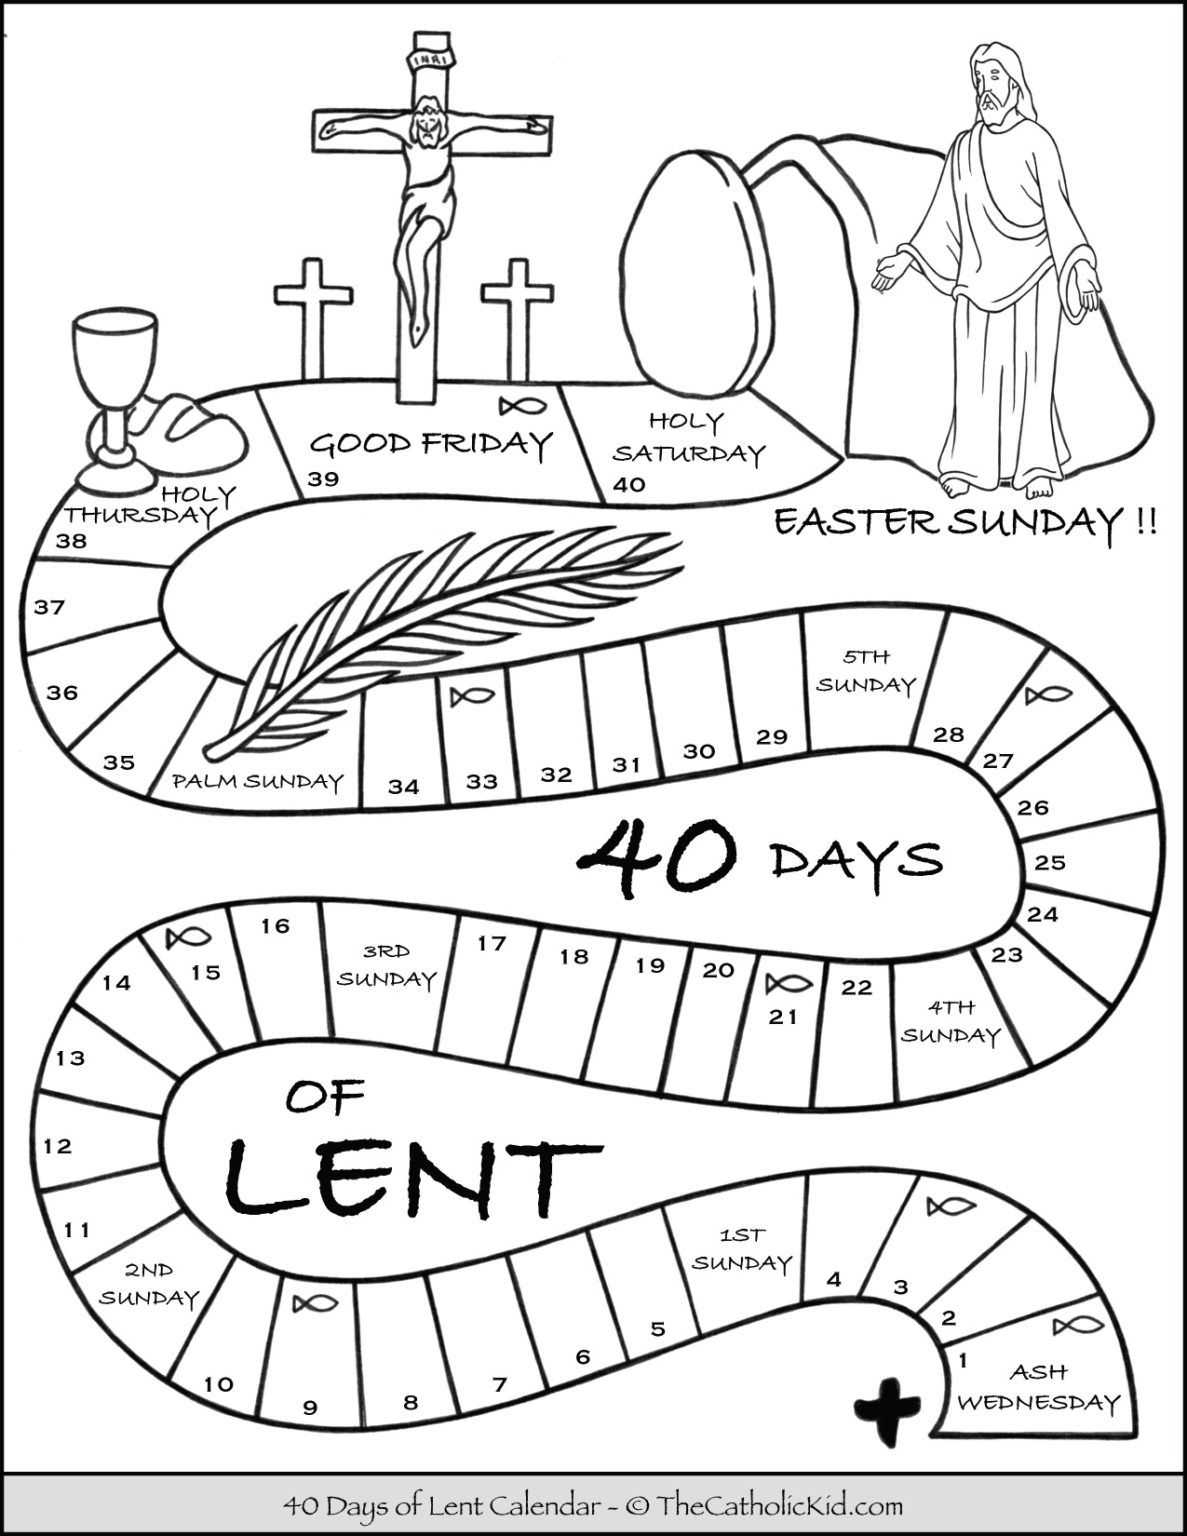 medium resolution of palm sunday Archives - The Catholic Kid - Catholic Coloring Pages and Games  for Children   Catholic coloring